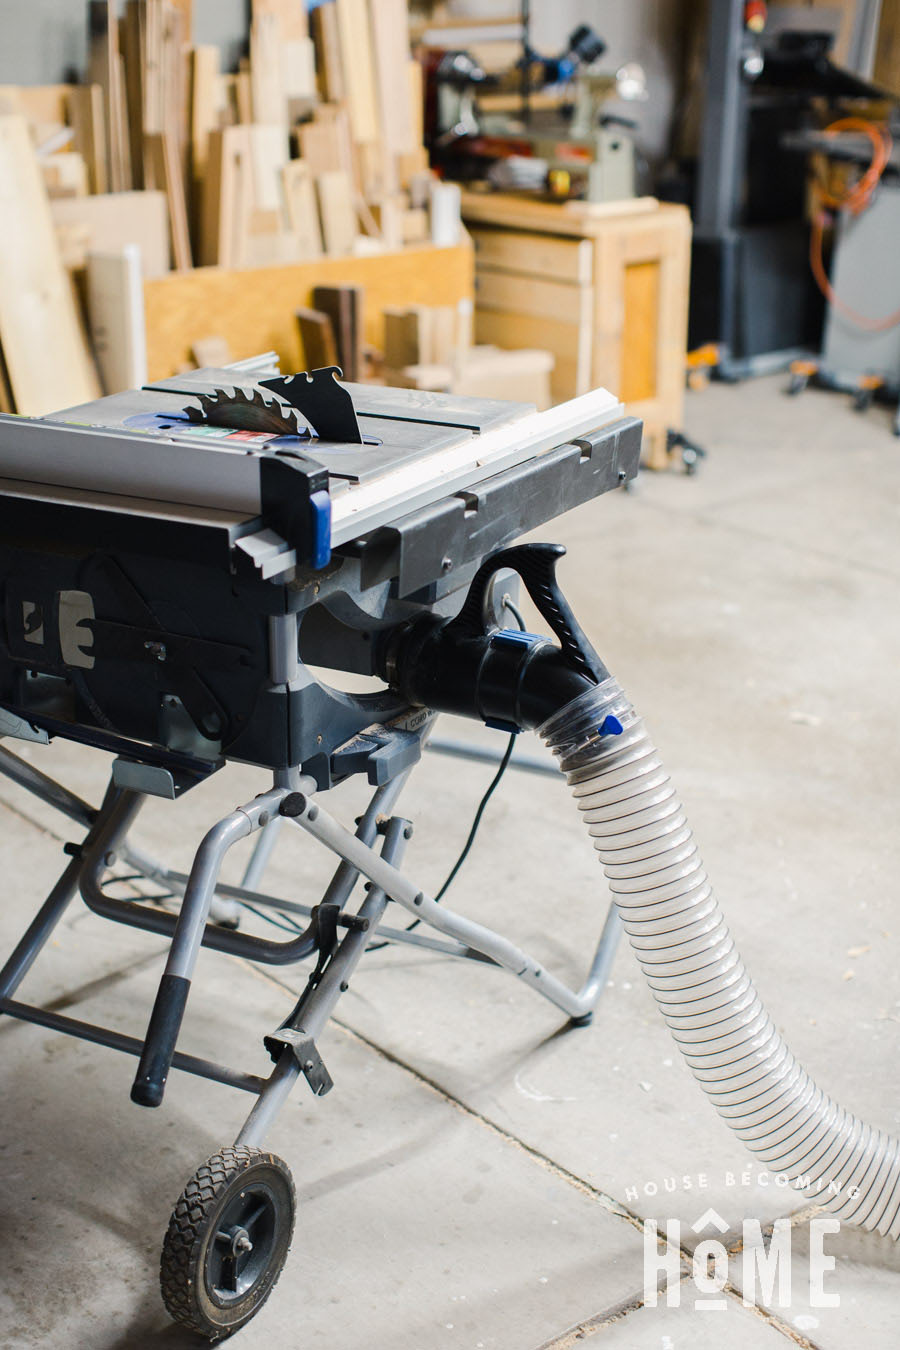 Small Garage Dust Collection Dust Right Handle on a Portable Table Saw